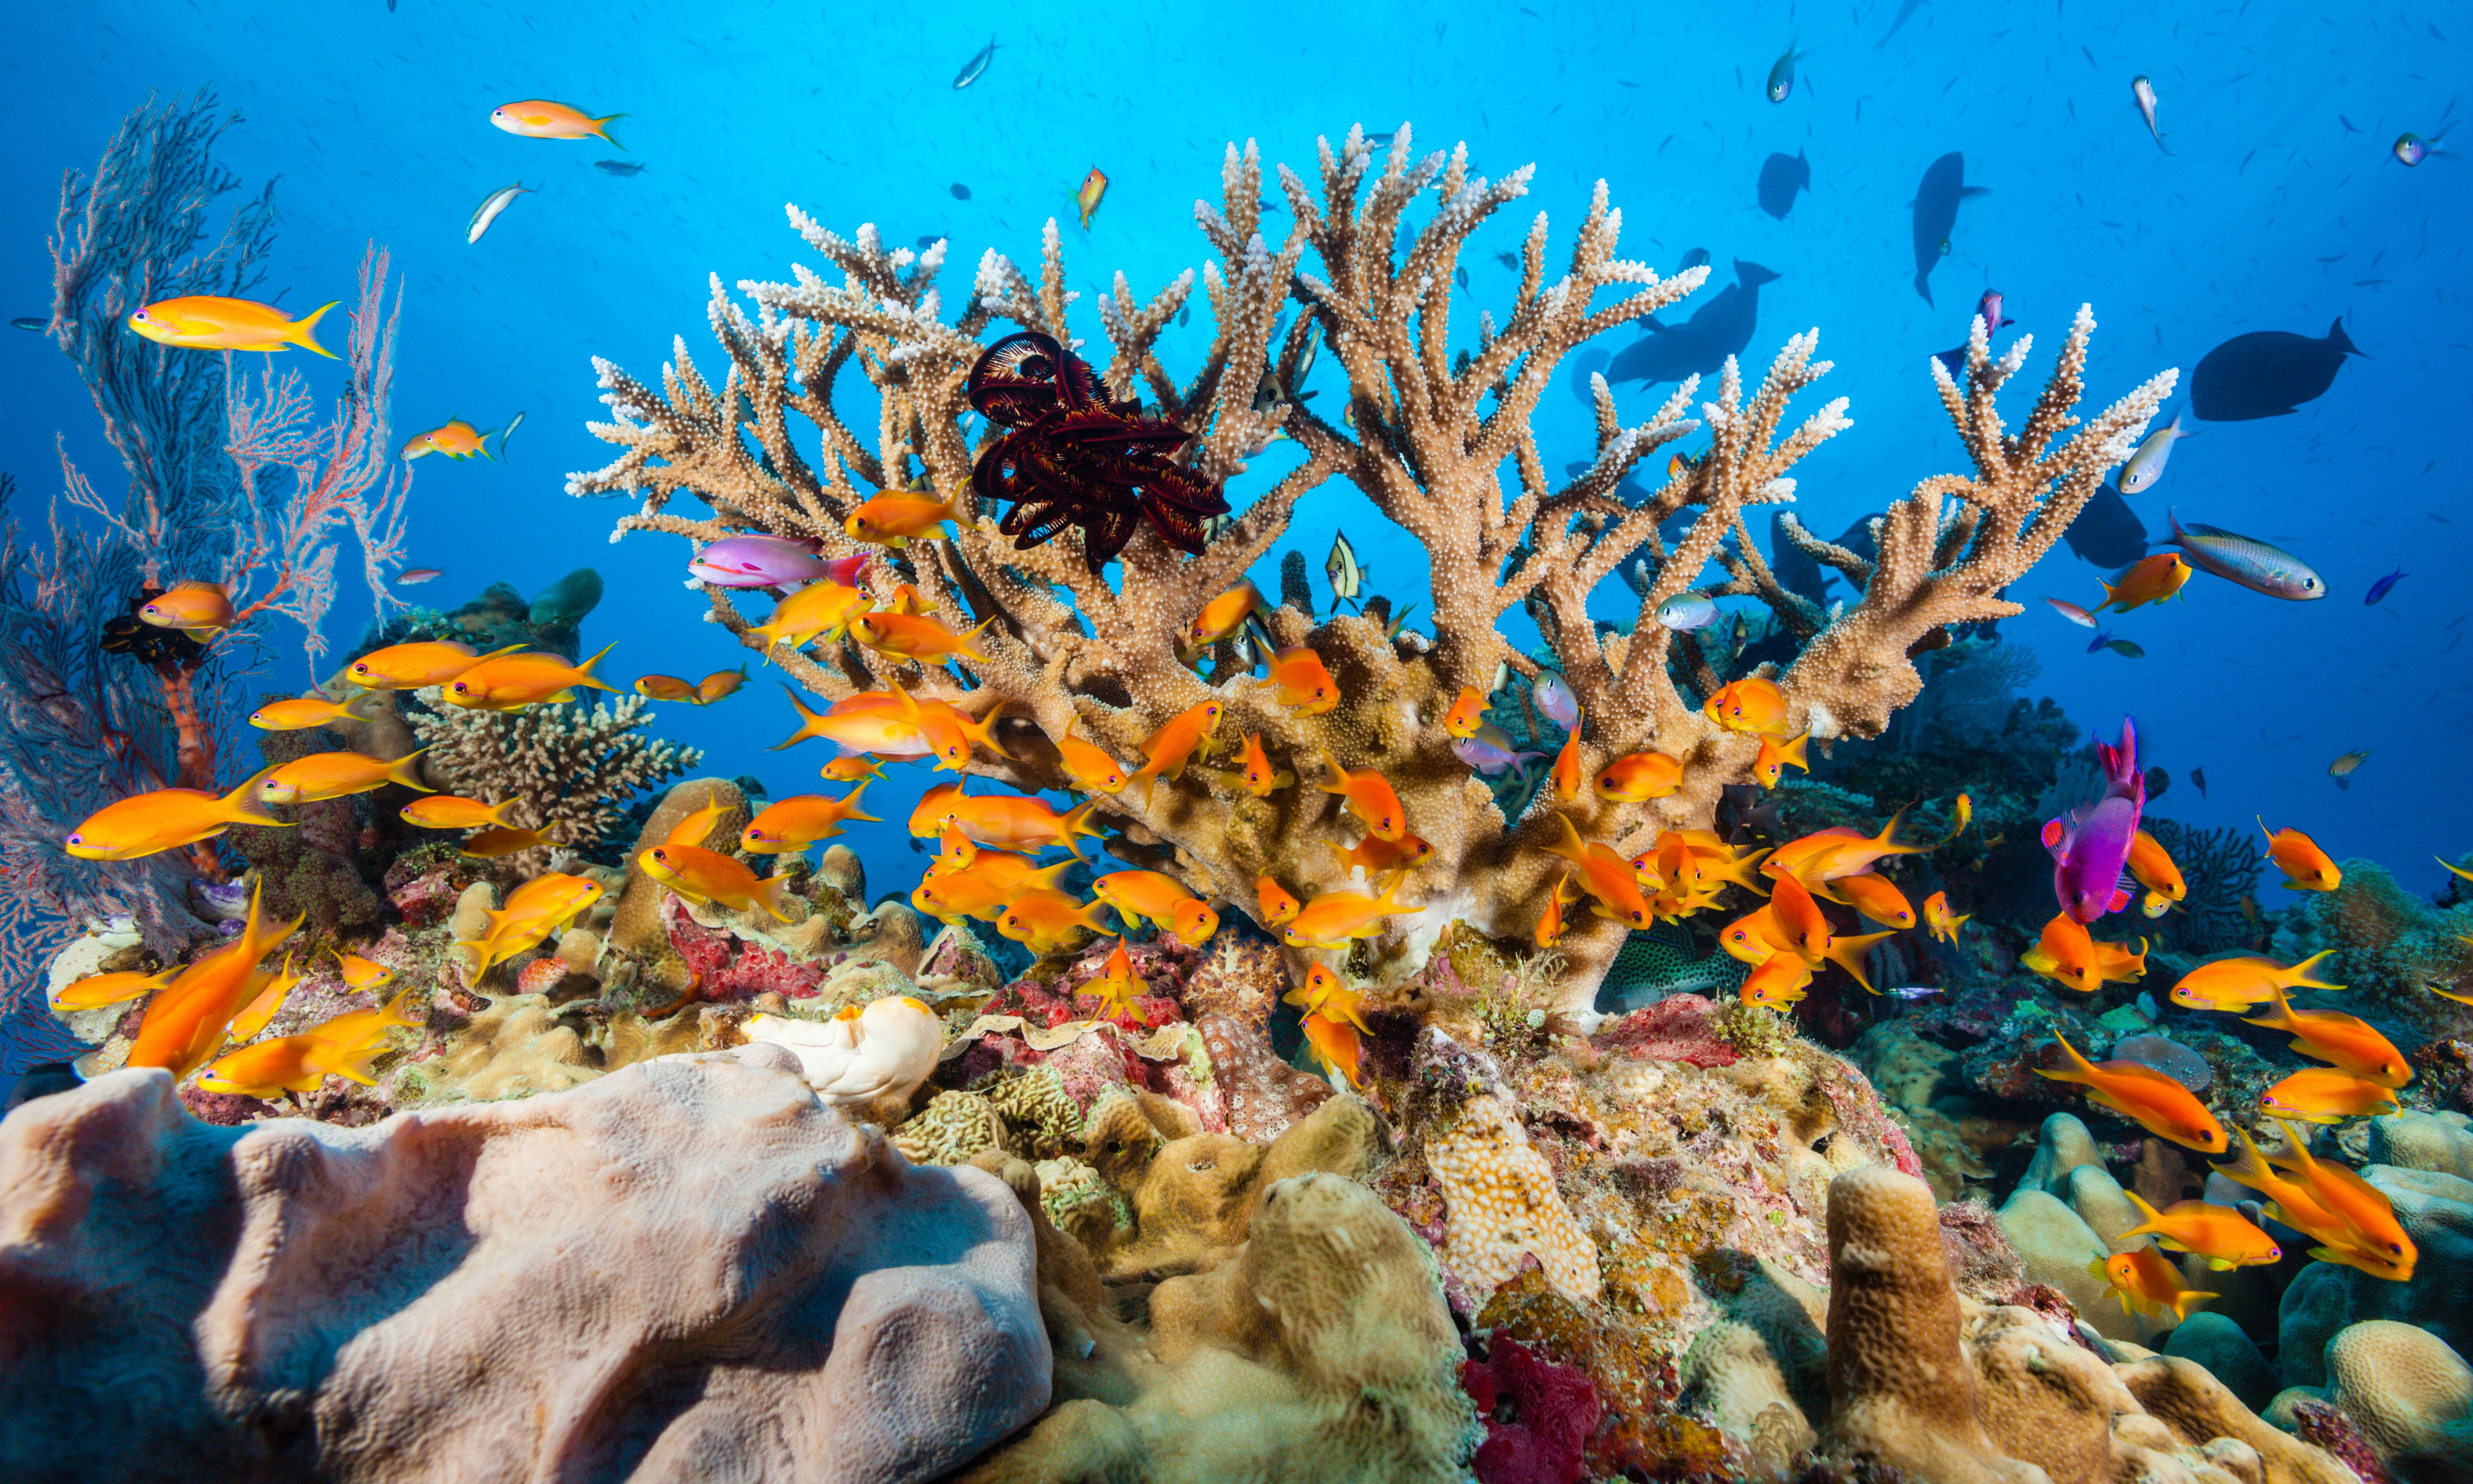 P&O cruise ship dumped 27,000 litres of waste on Great Barrier Reef, Senate hears